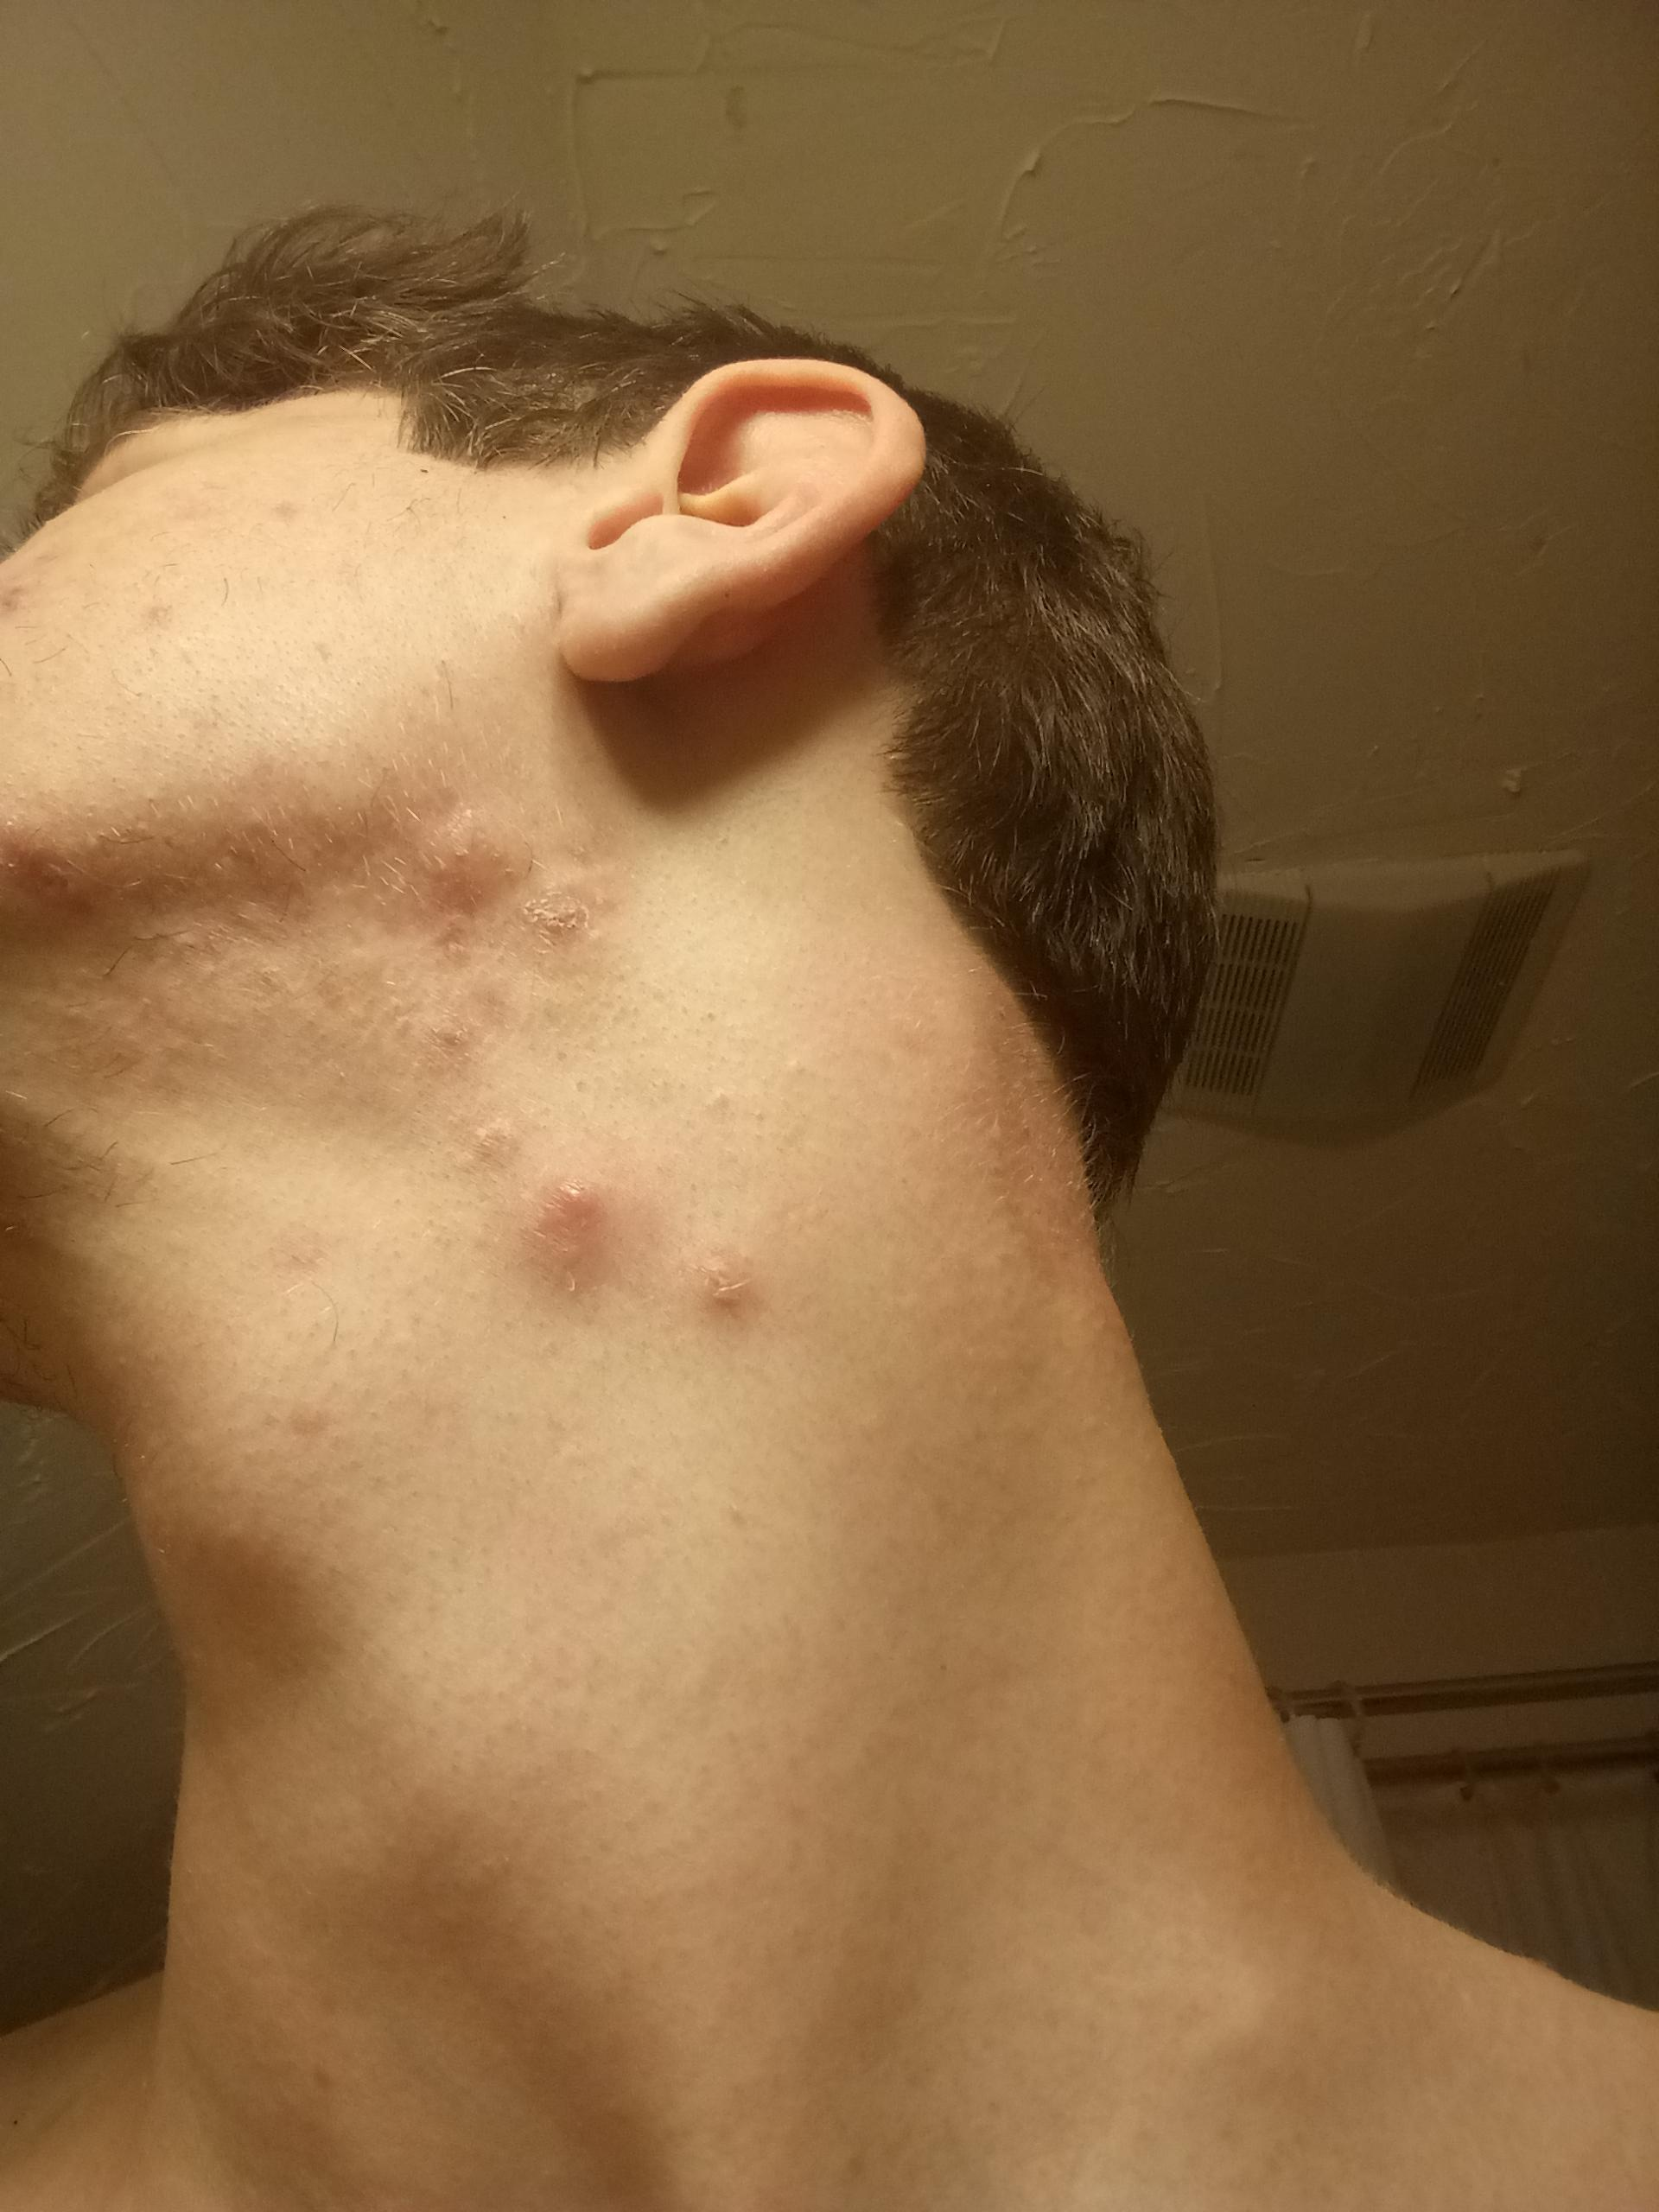 [Acne] 18 year old male and I get cystic acne in the same ...